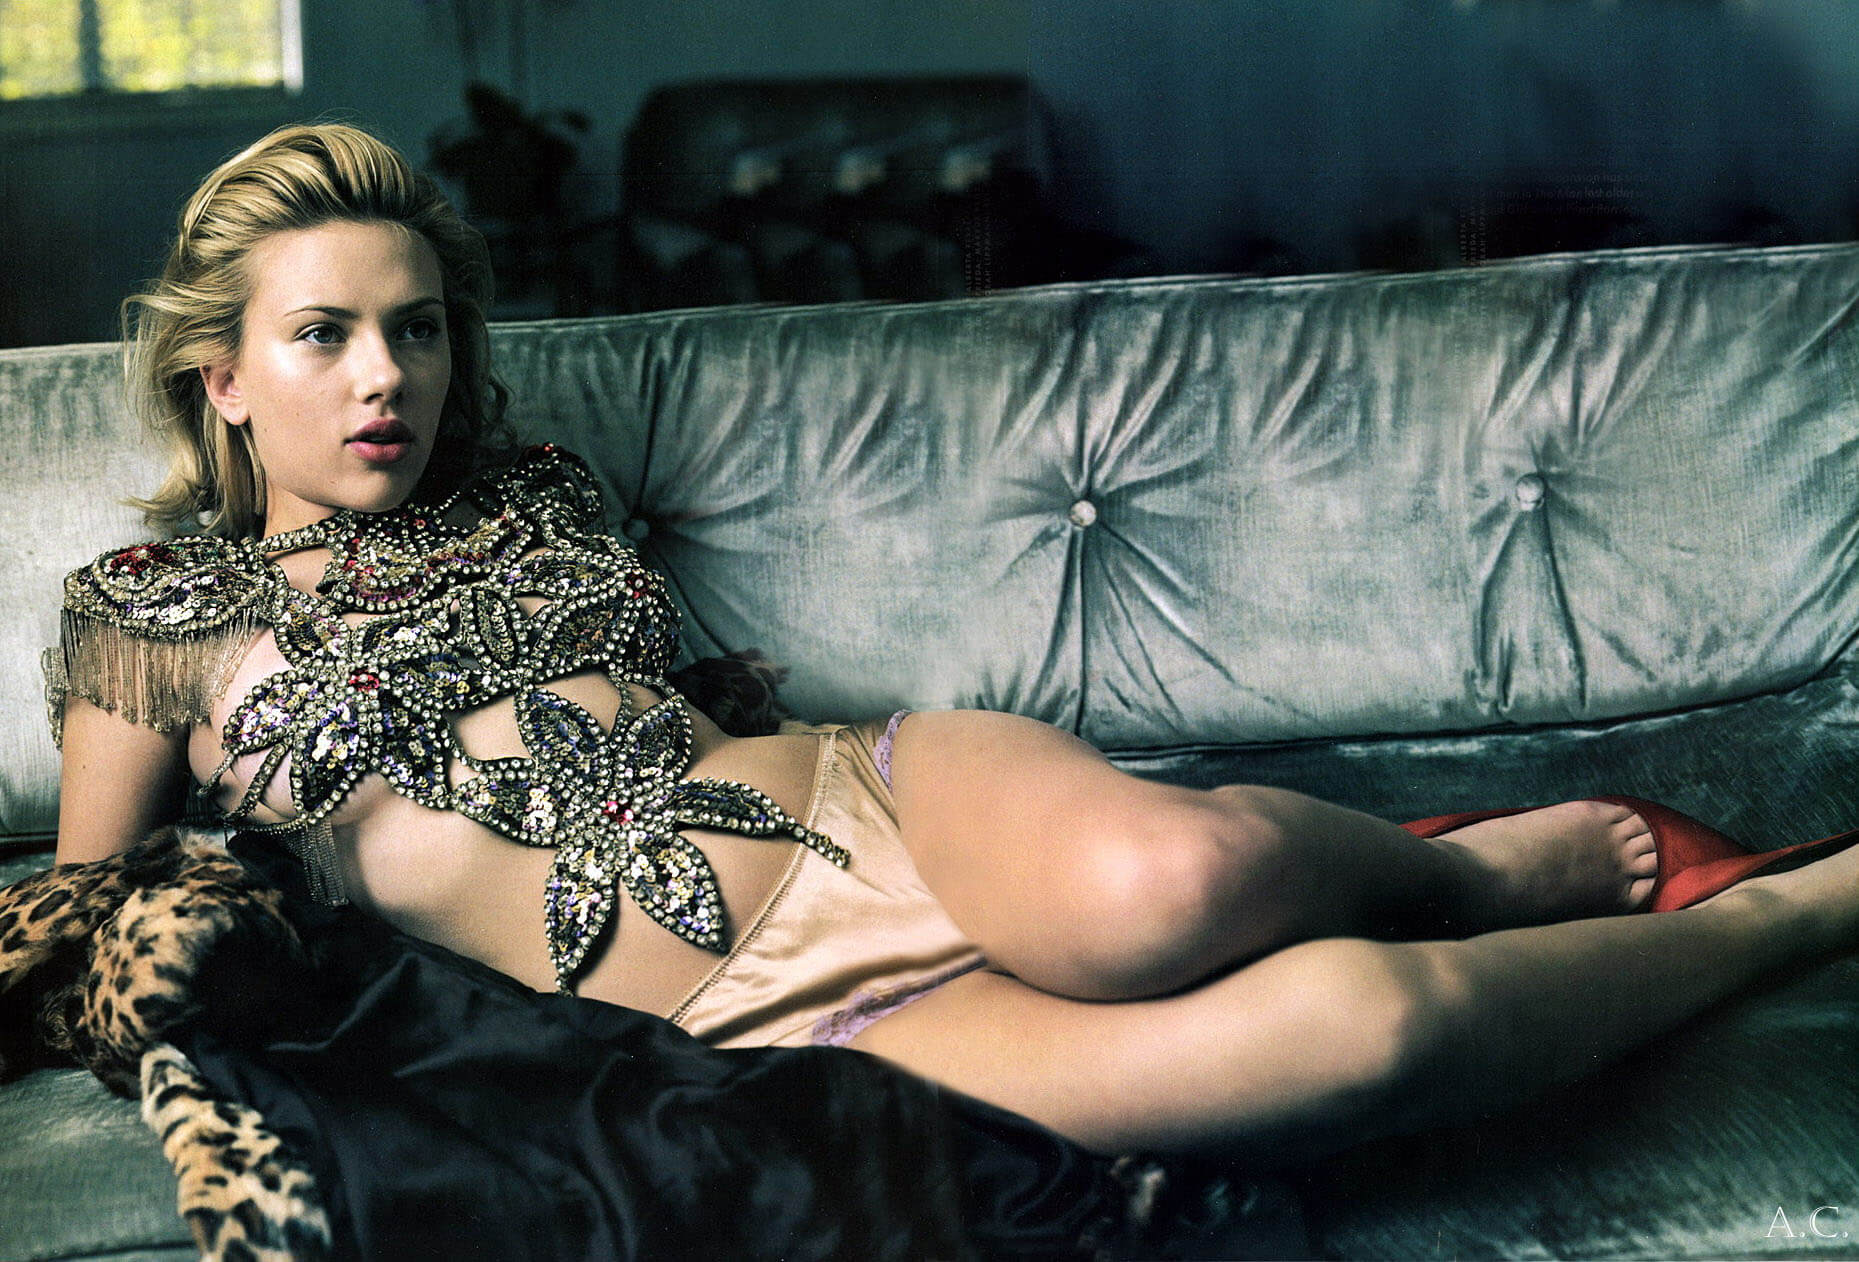 Scarlett-Johansson-thighs awesome pic